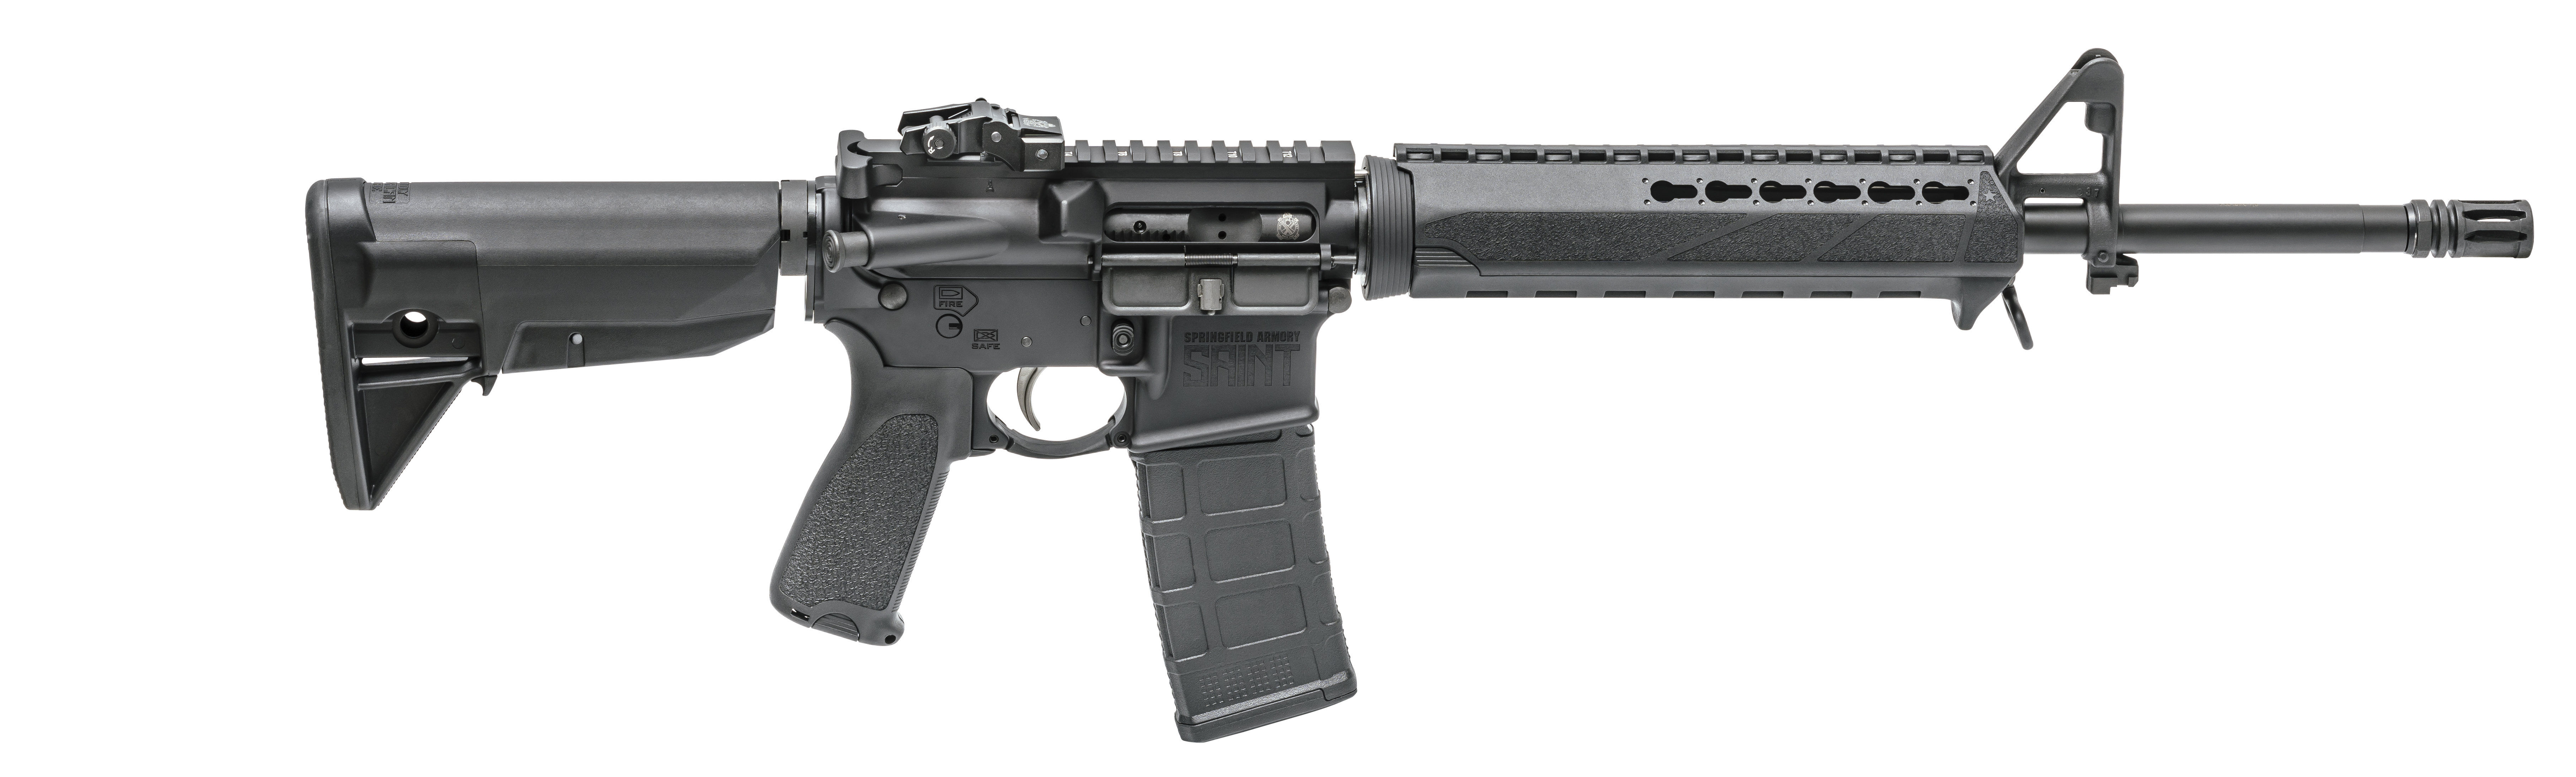 The new Springfield Saint is a well-appointed AR at a really good price point. Image courtesy of Springfield Armory.